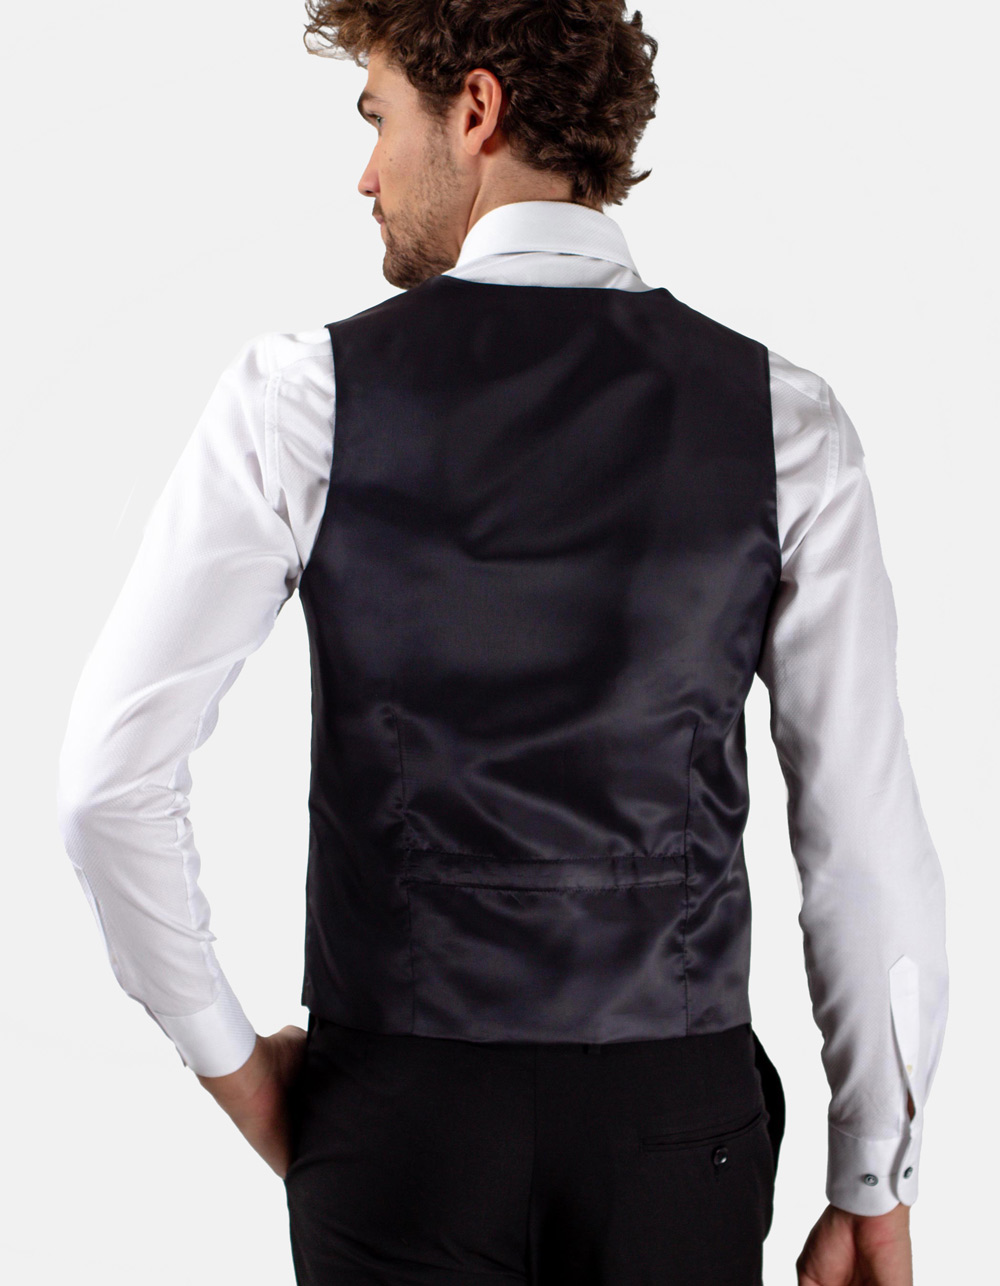 Black dress waistcoat - Backside